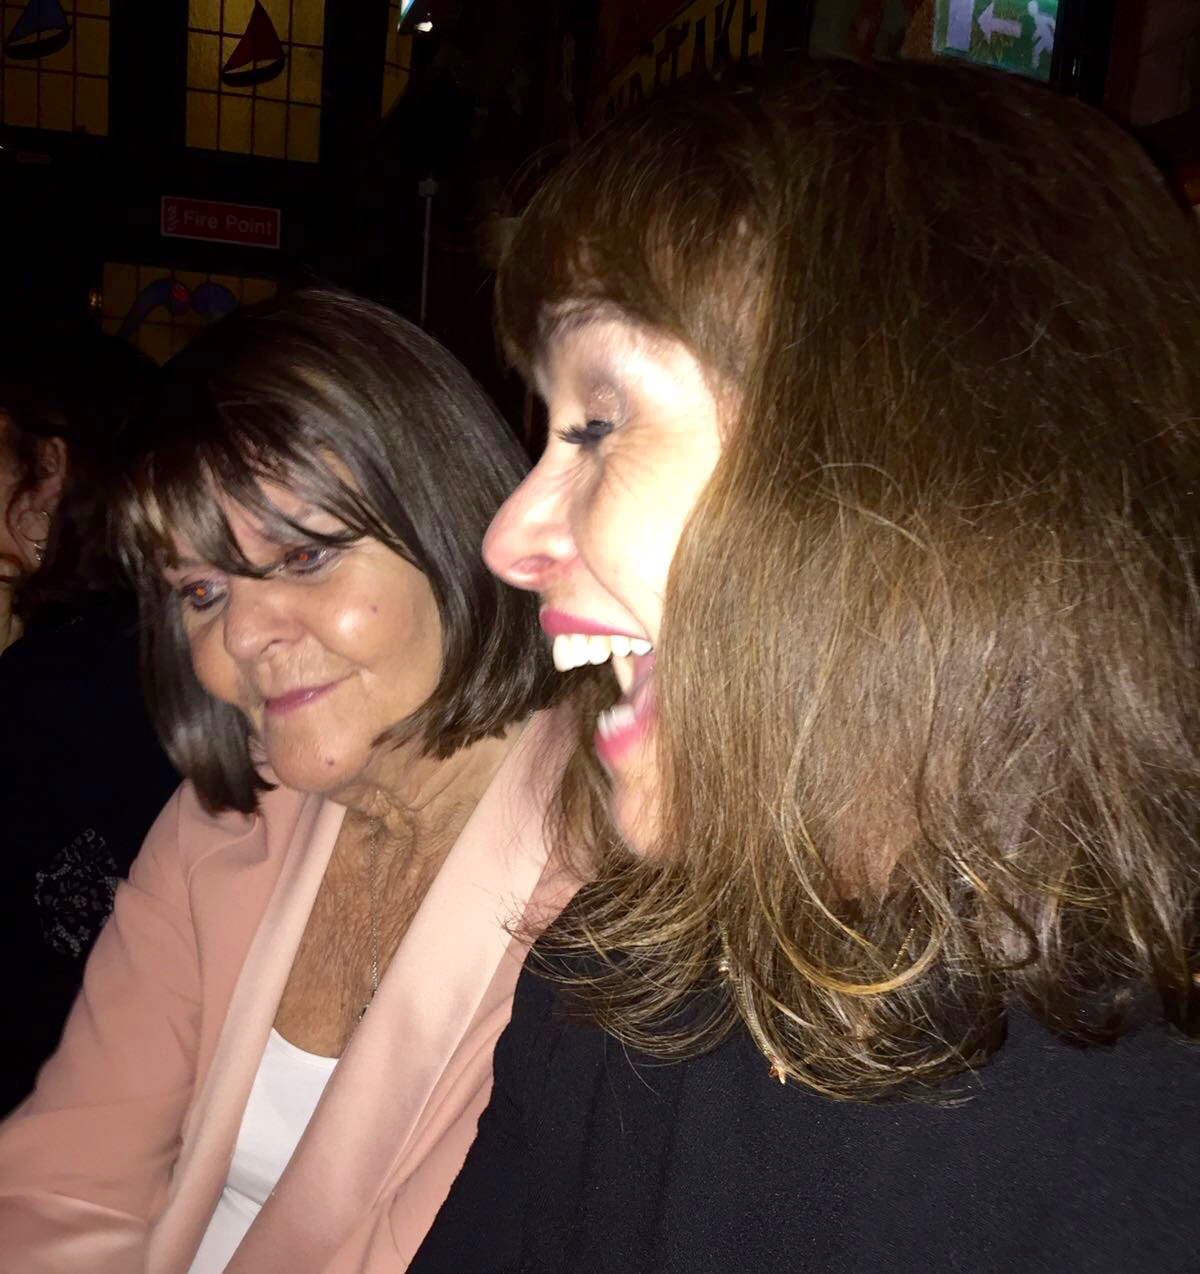 Celine and me catching up at O'Connor's Pub listening to great the music of De Derga.